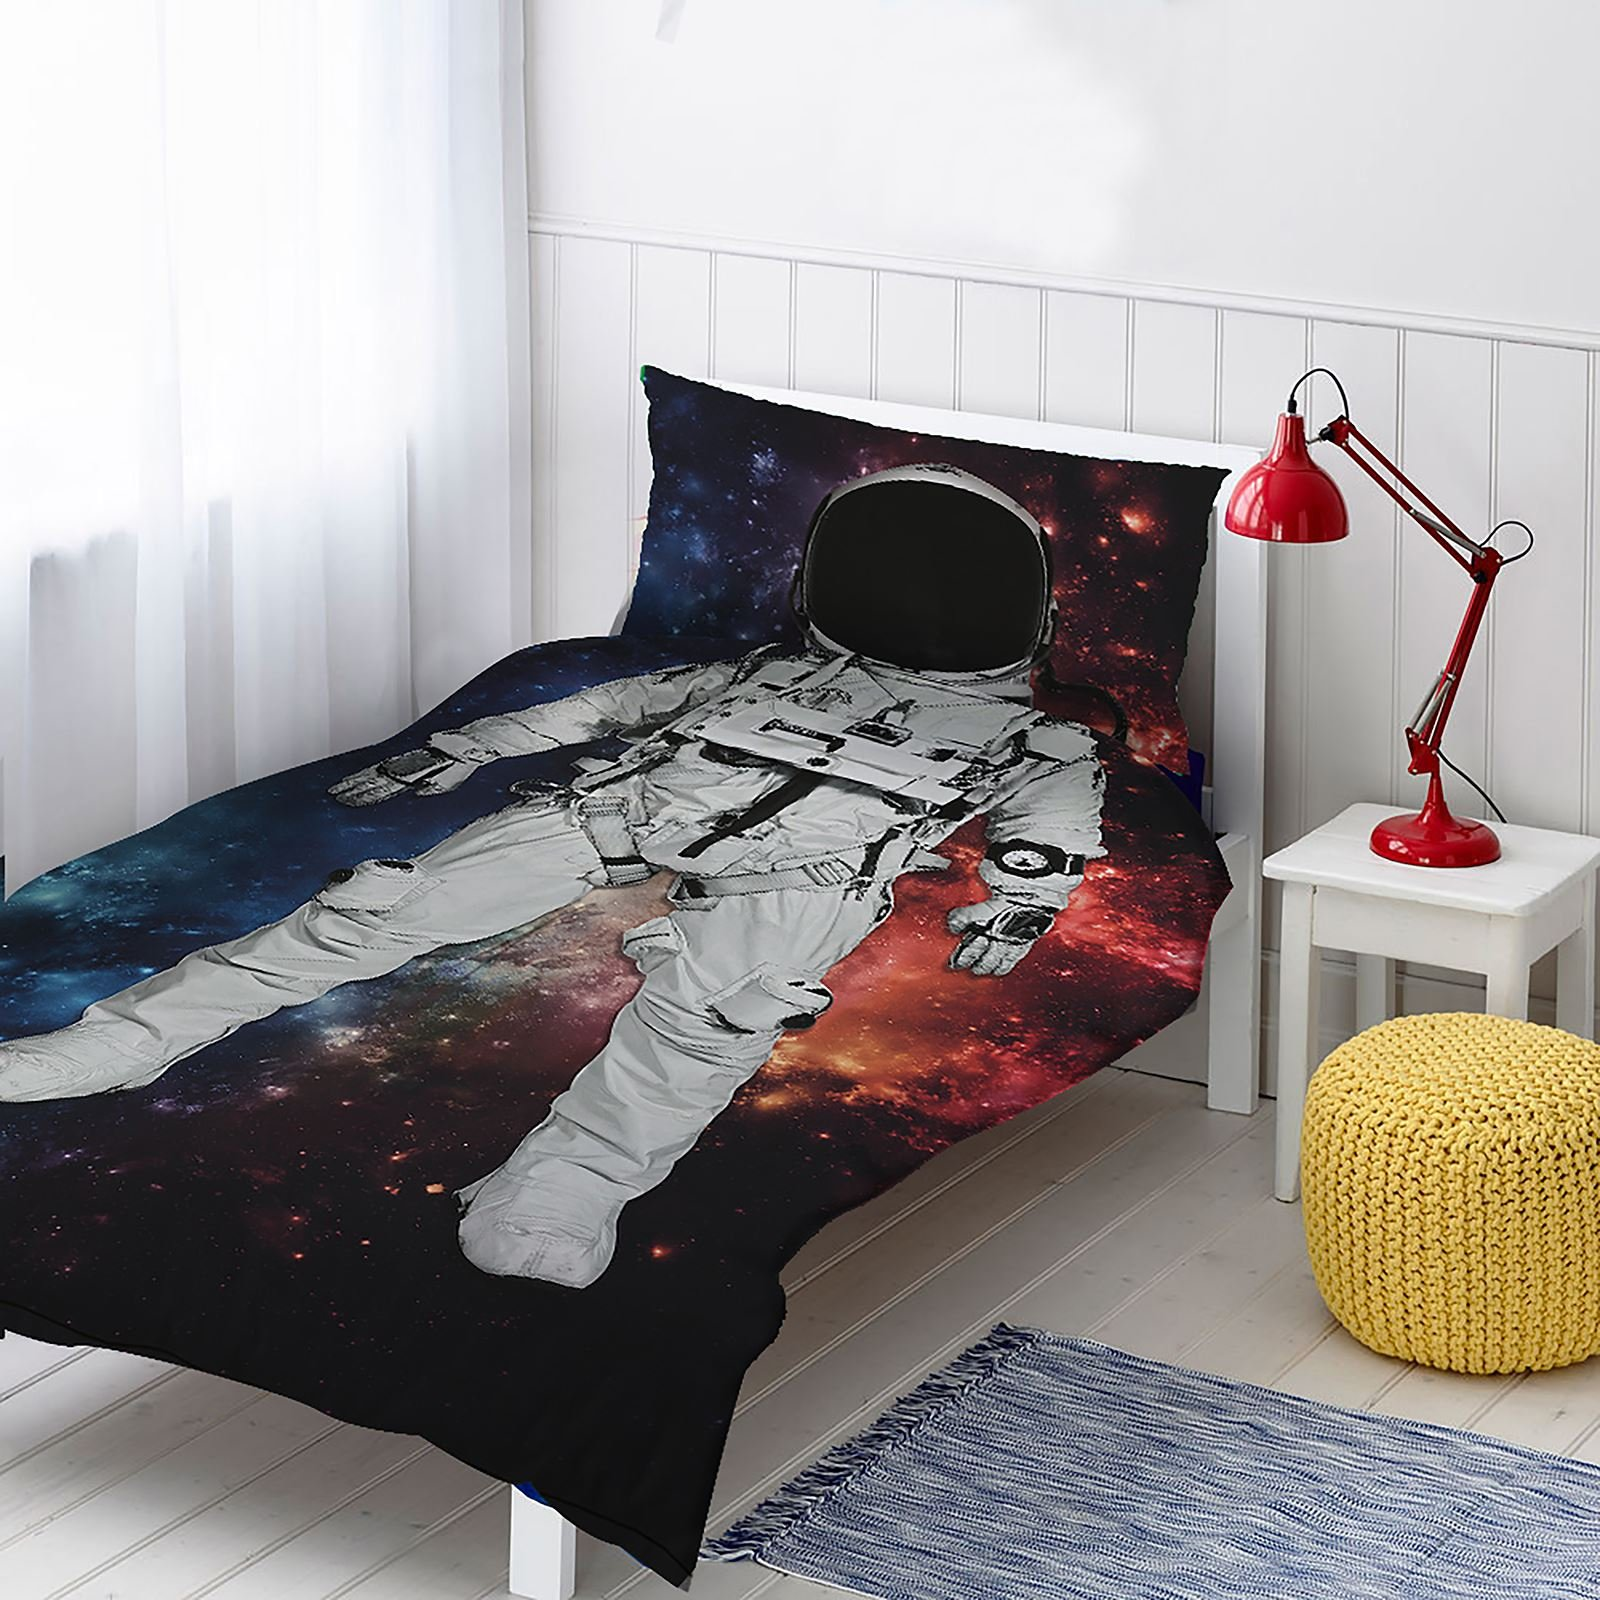 Astronaut 2 Piece UK Single/US Twin Sheet Set, 1 x Double Sided Sheet and 1 x Pillowcase